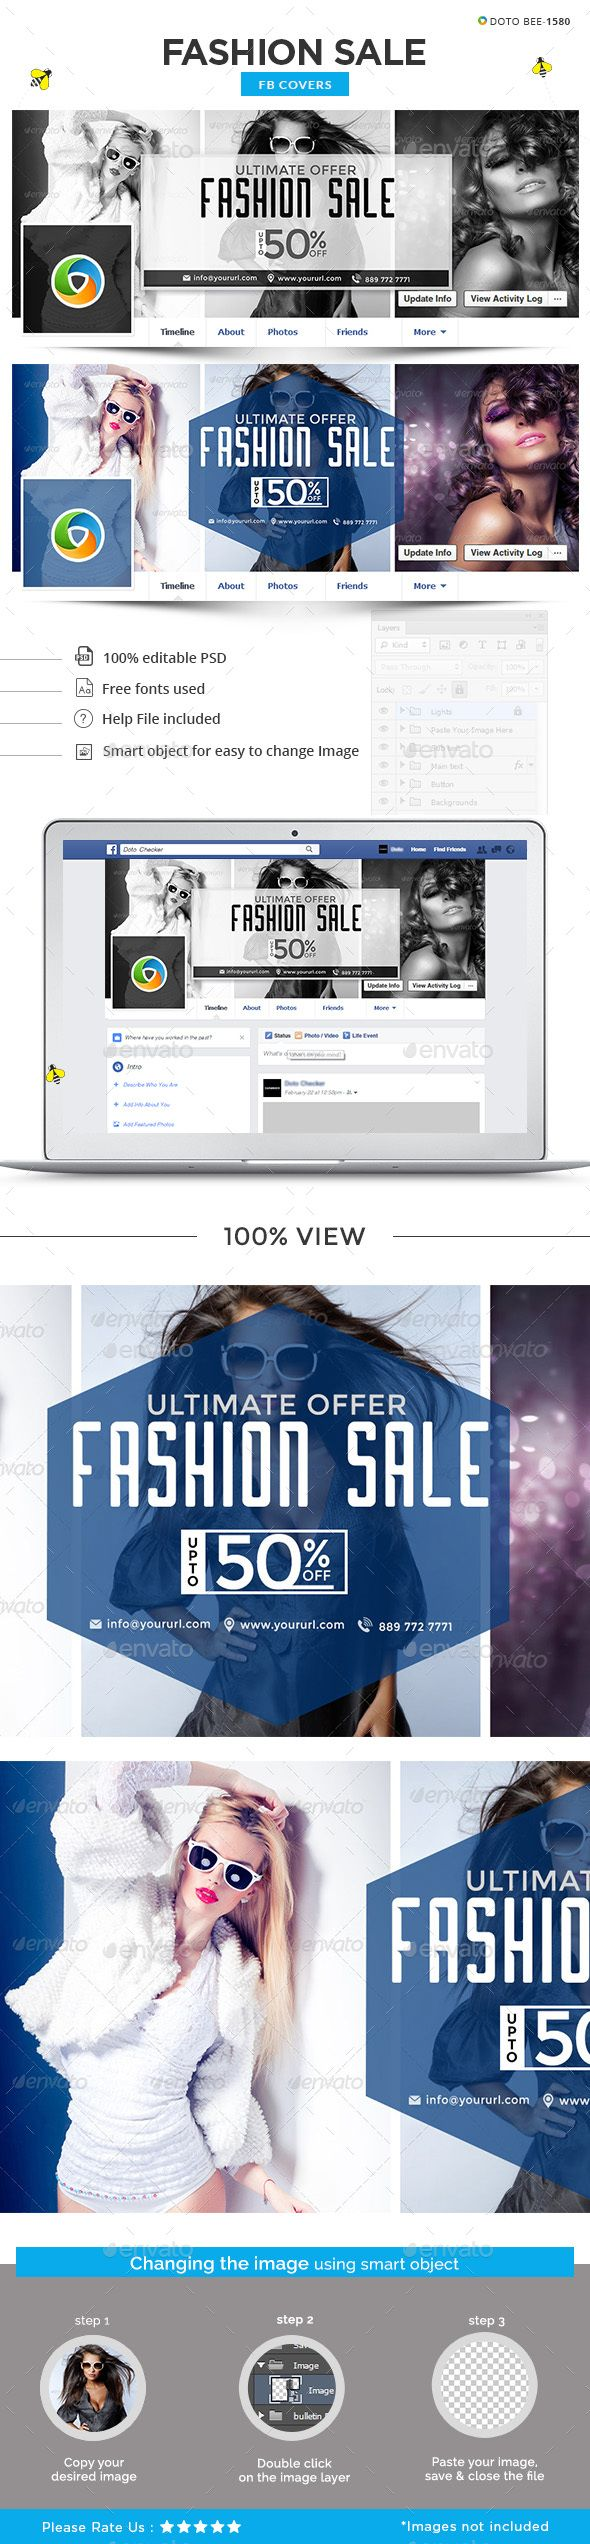 Fashion Sale Facebook Cover Template PSD. Download here: https://graphicriver.net/item/fashion-sale-facebook-cover/17228761?ref=ksioks